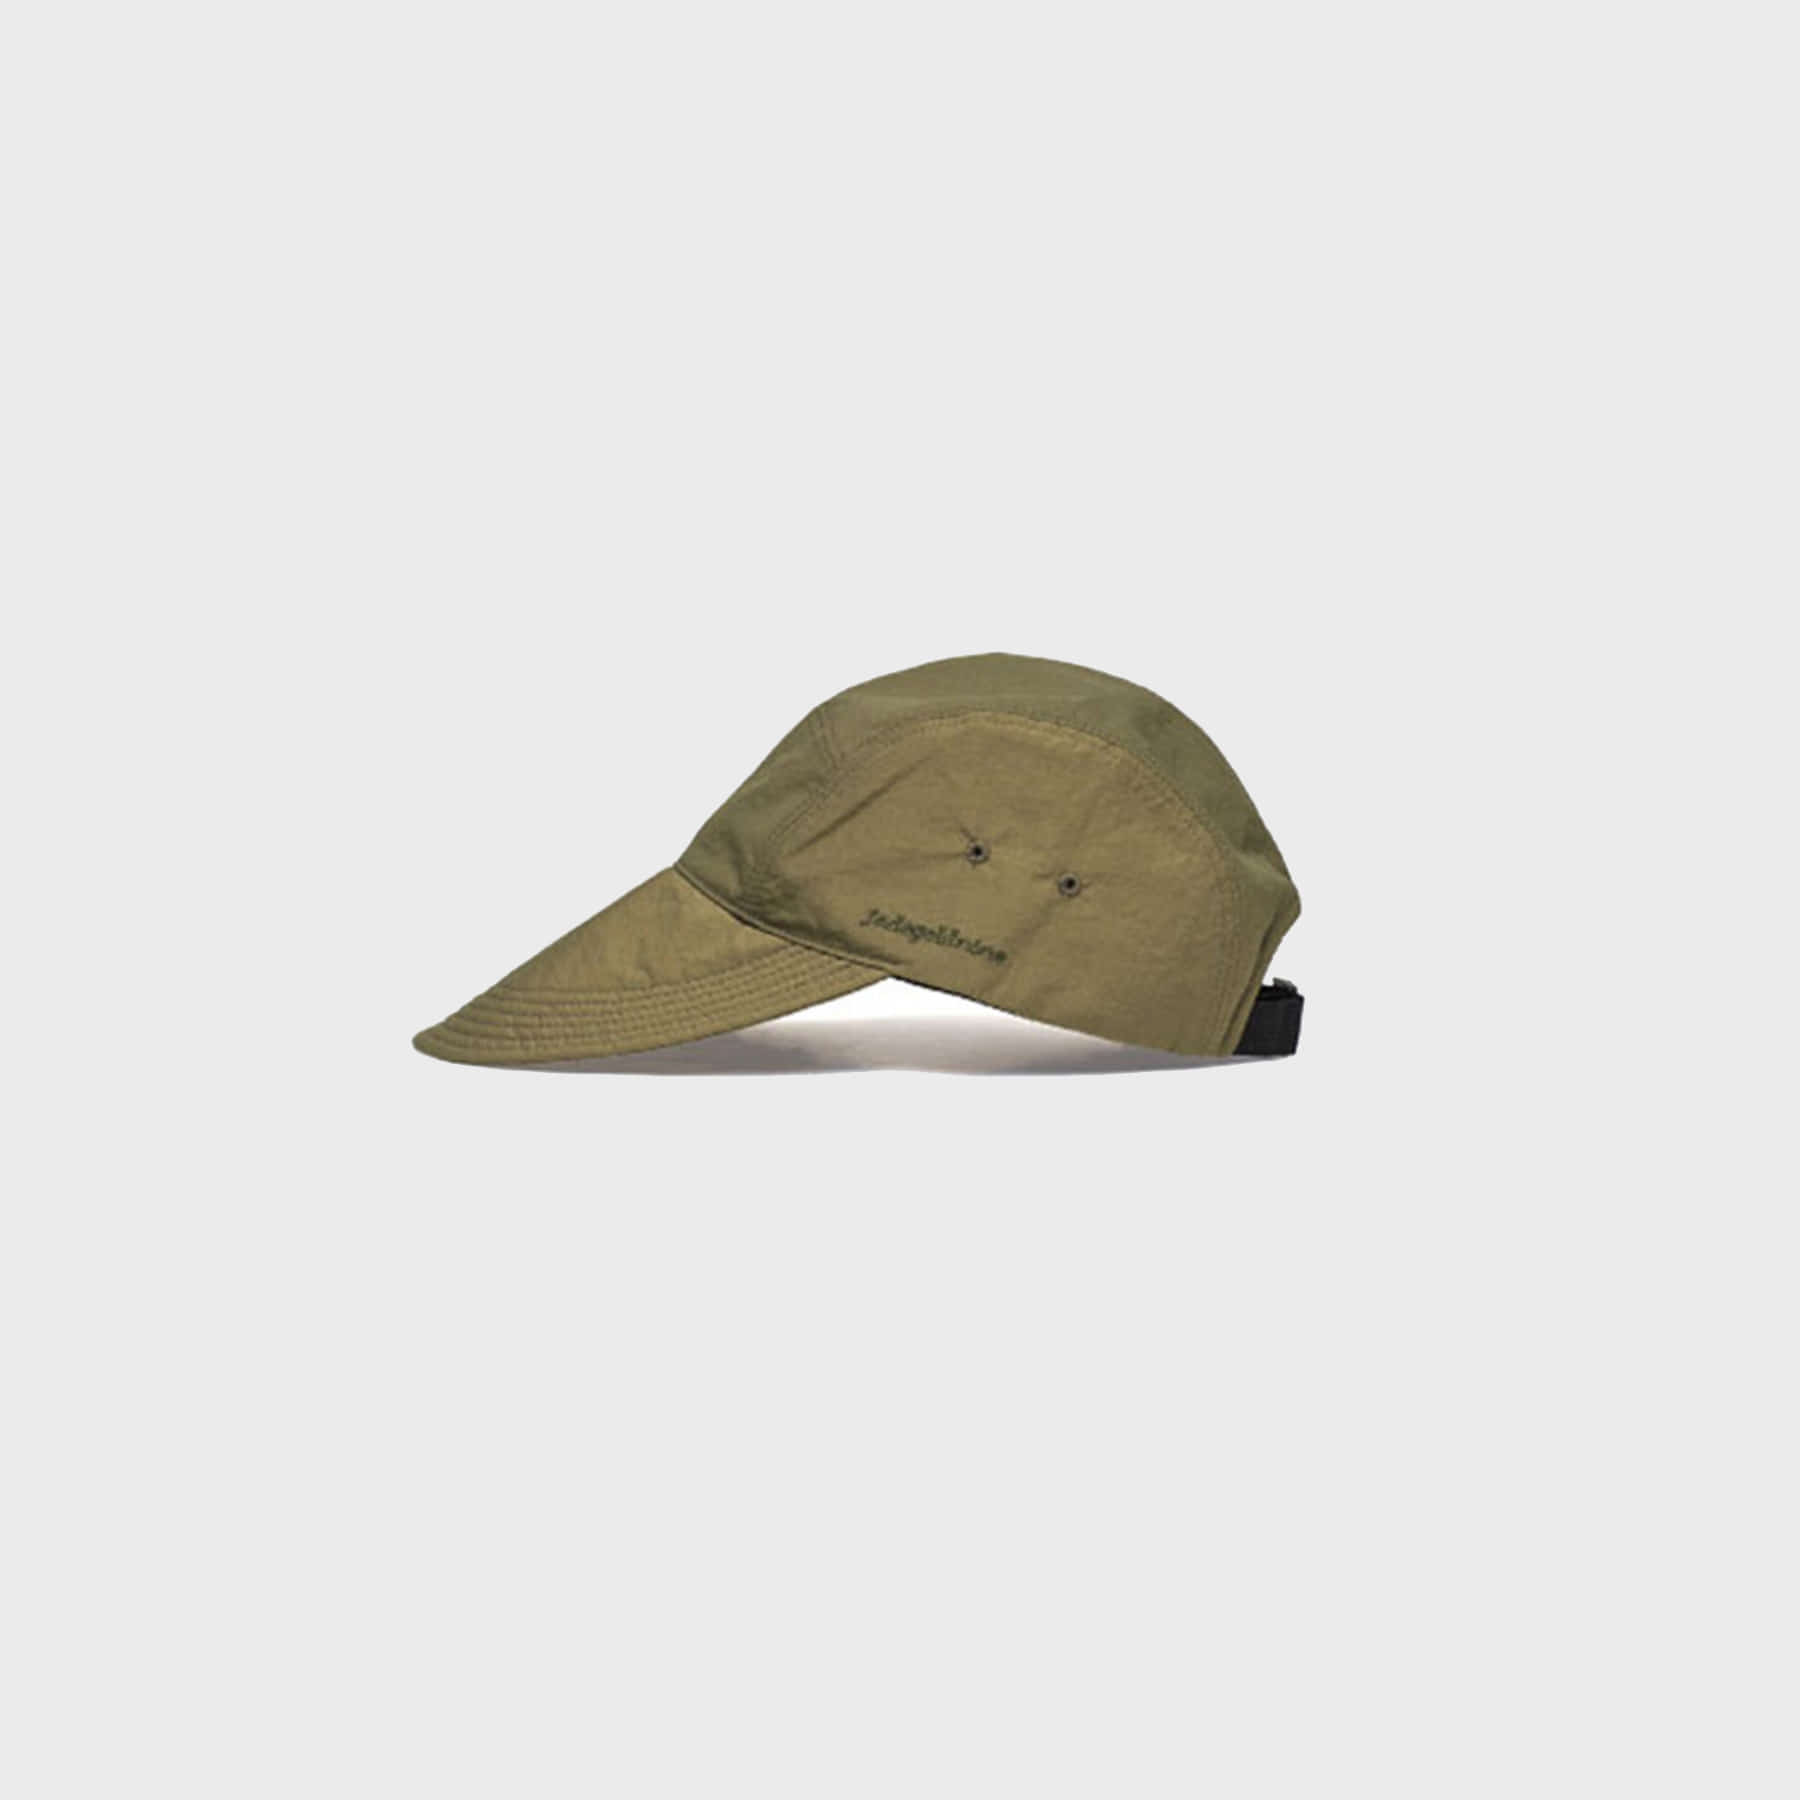 Summer campcap (khaki,black)